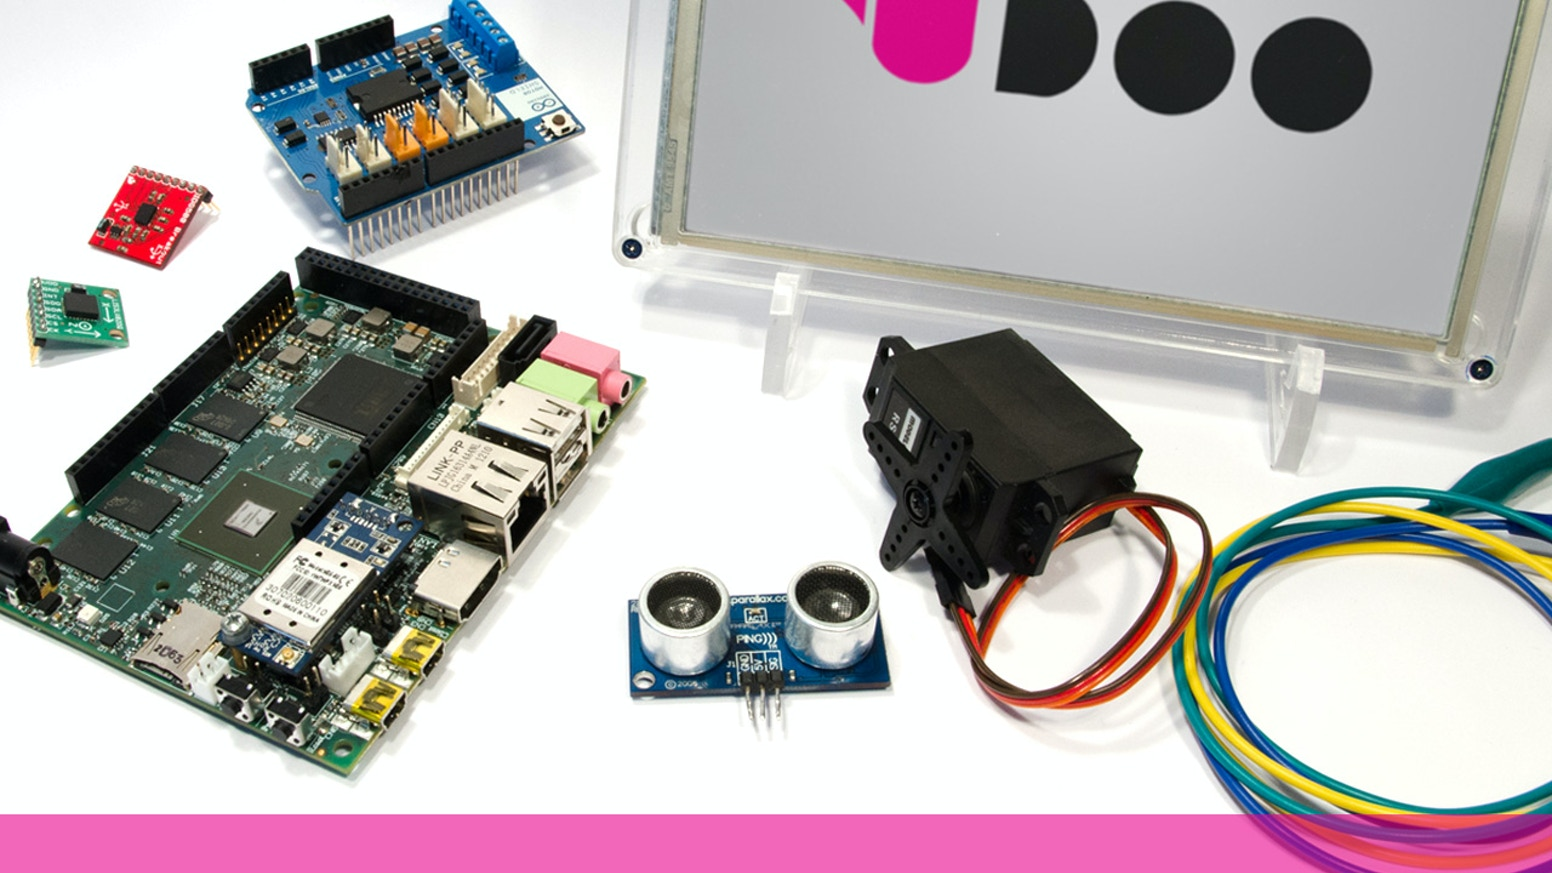 UDOO takes your DIY projects to the next level and it's a powerful tool for education and creativity.